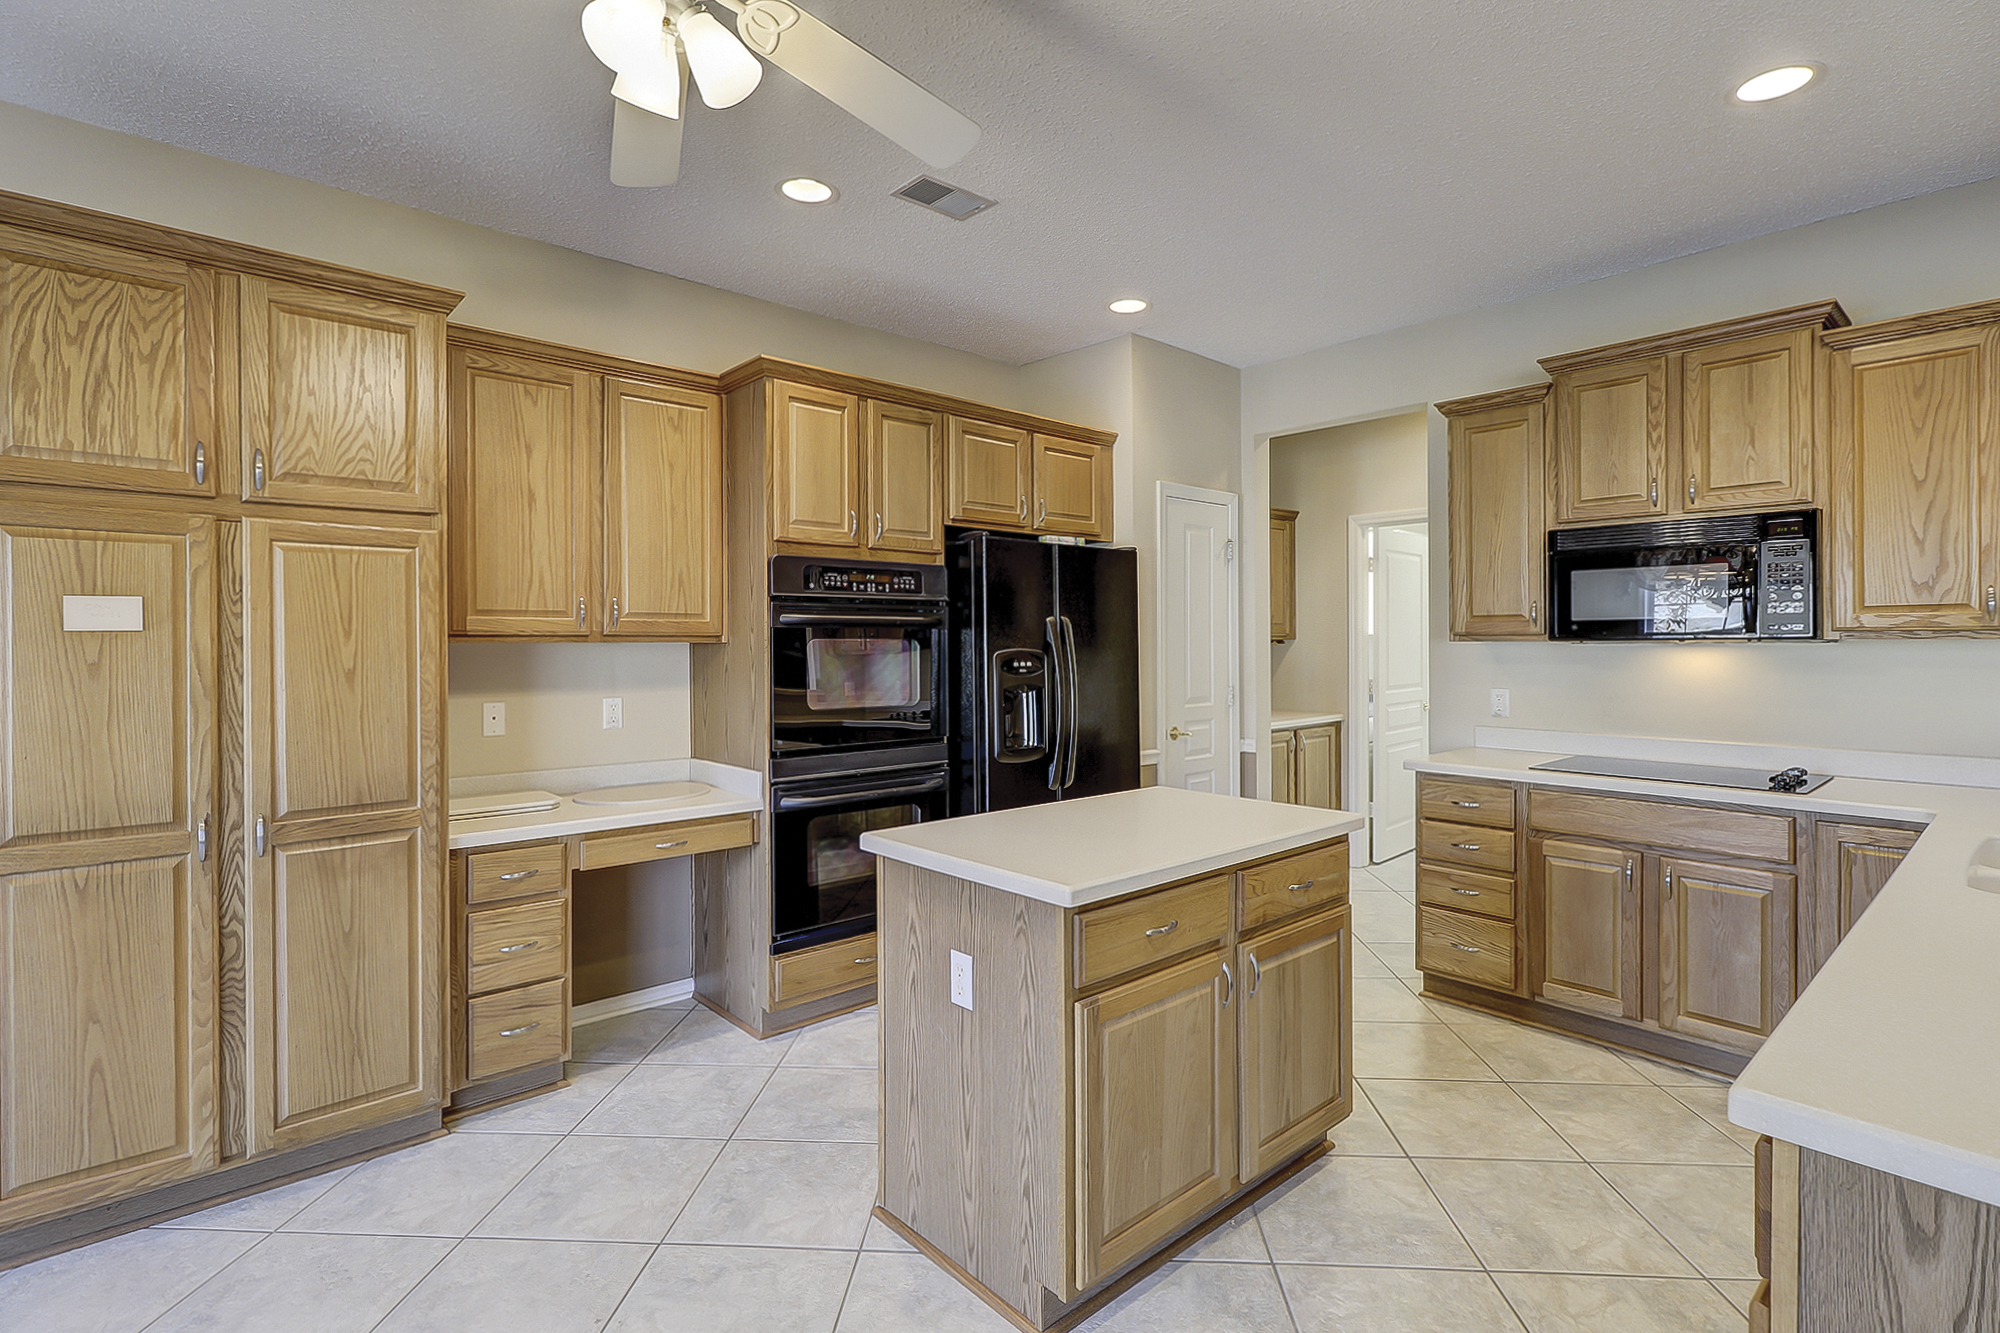 This kitchen has everything: Double ovens, cabinet pantry, pantry, desk space, island, smooth cook top, integral sink, solid surface counter tops, plenty of lighting and a ceiling fan. Sun City Hilton Head